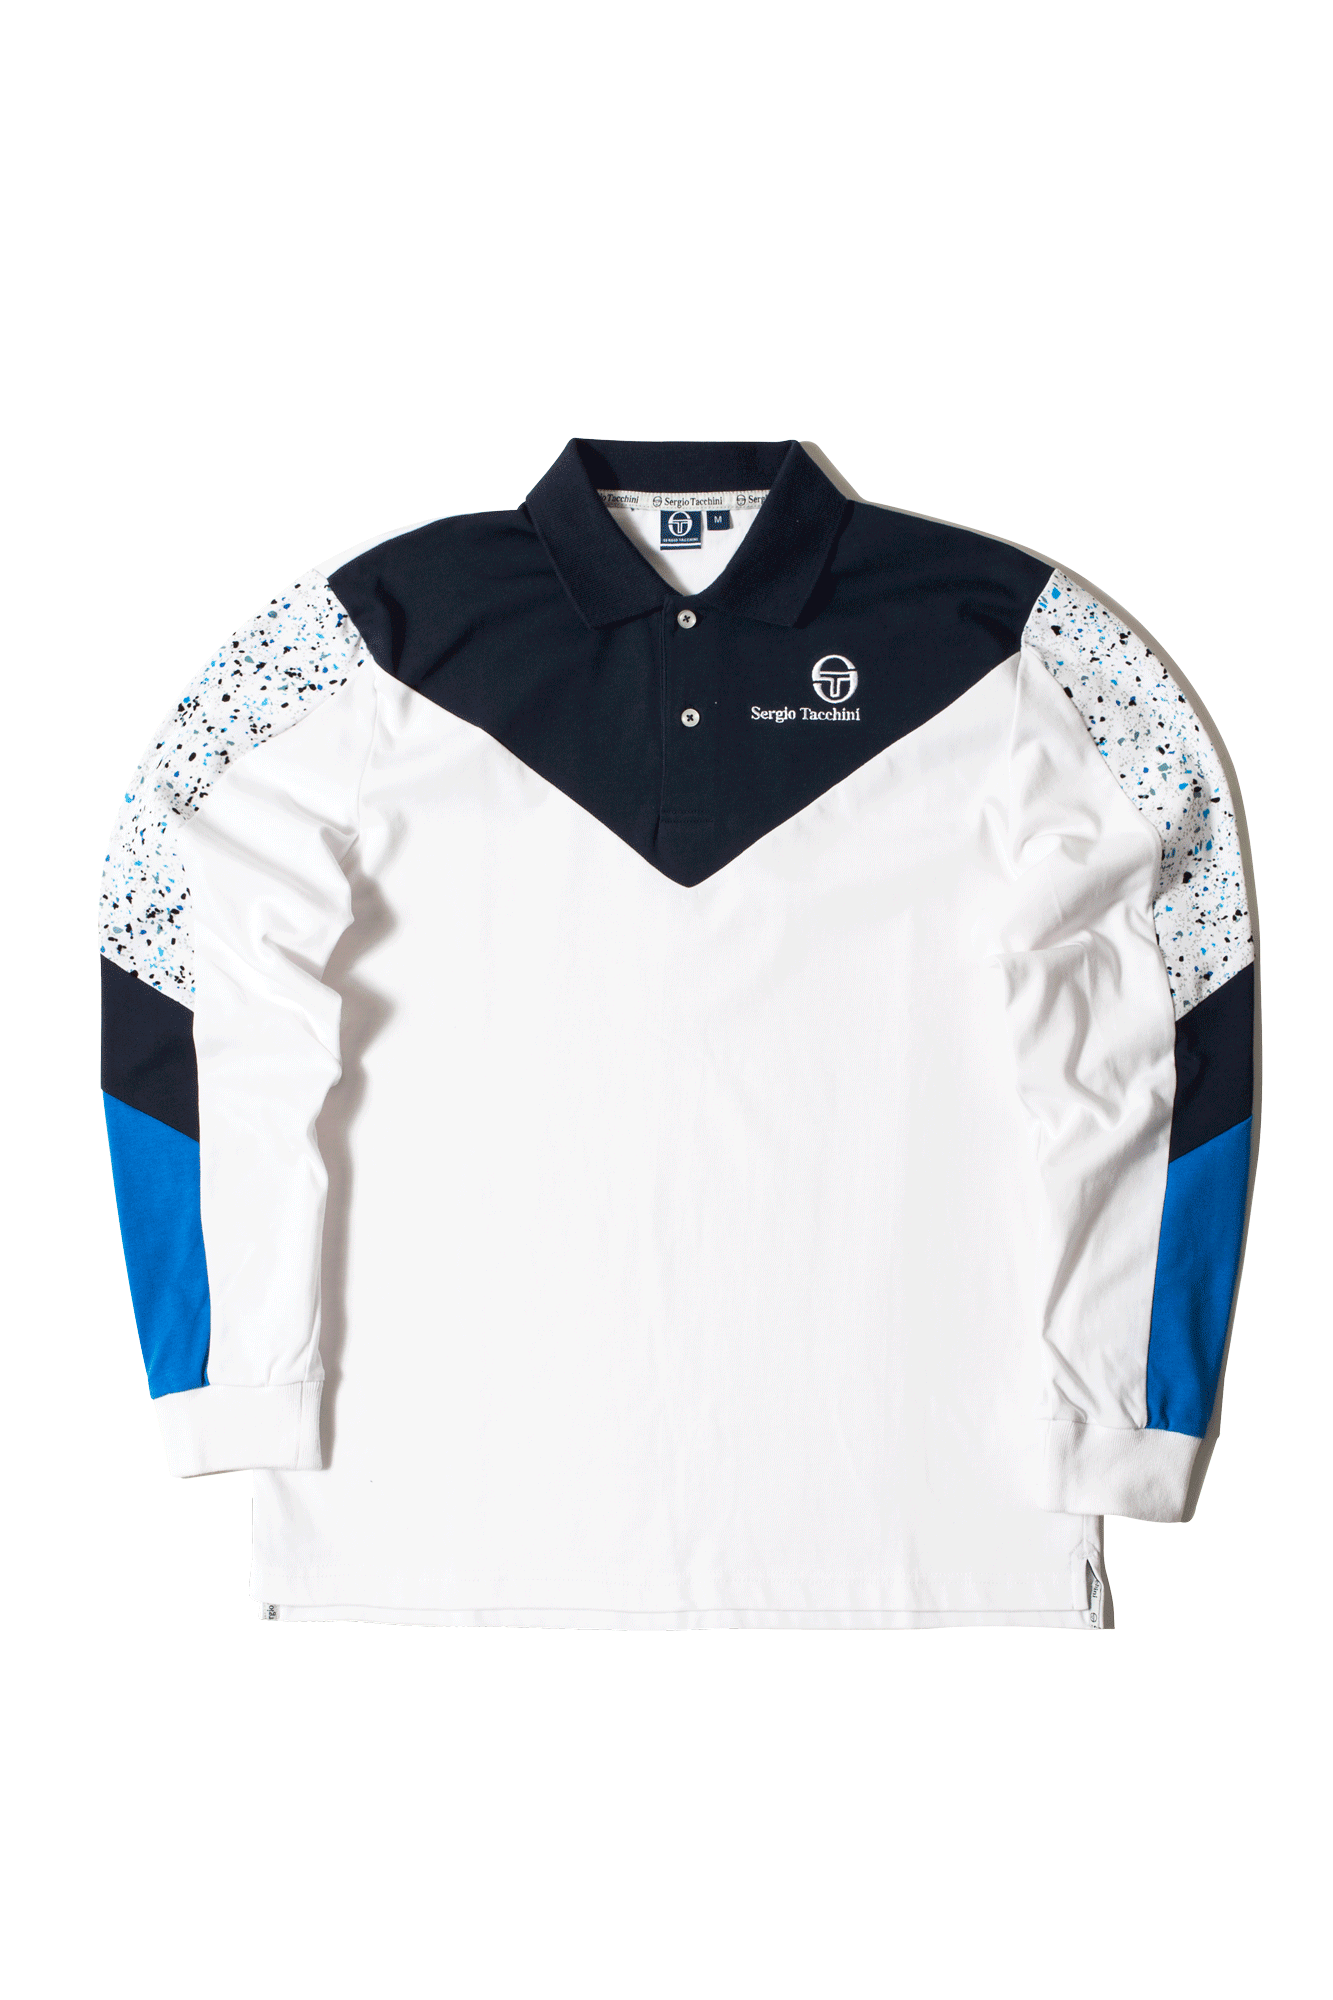 Sergio Tacchini Polo Shirt Copper Polo Terrazzo White 38030-116#000#WHITE#S - One Block Down